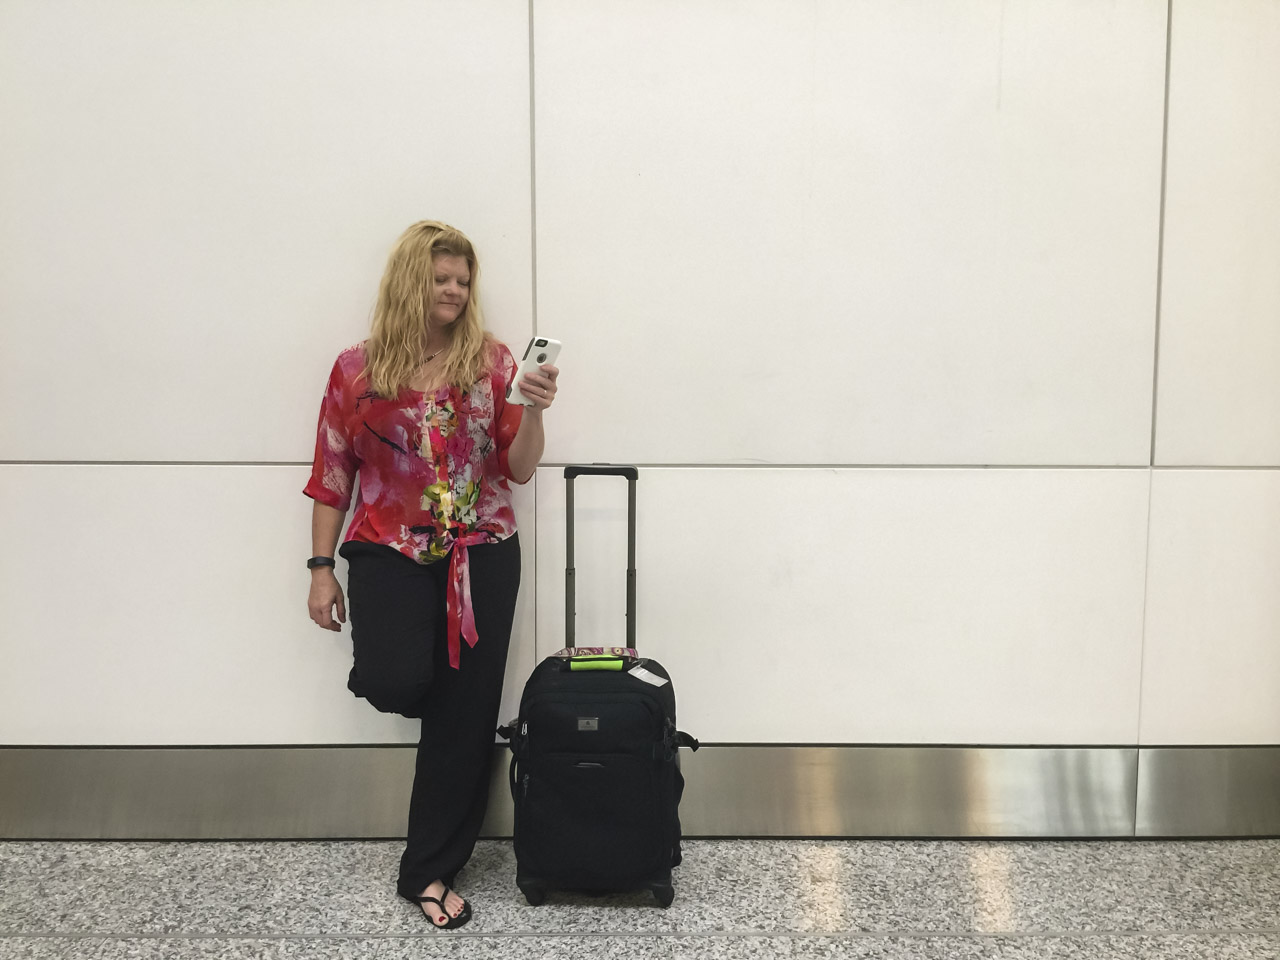 Lost luggage can give you travel anxiety